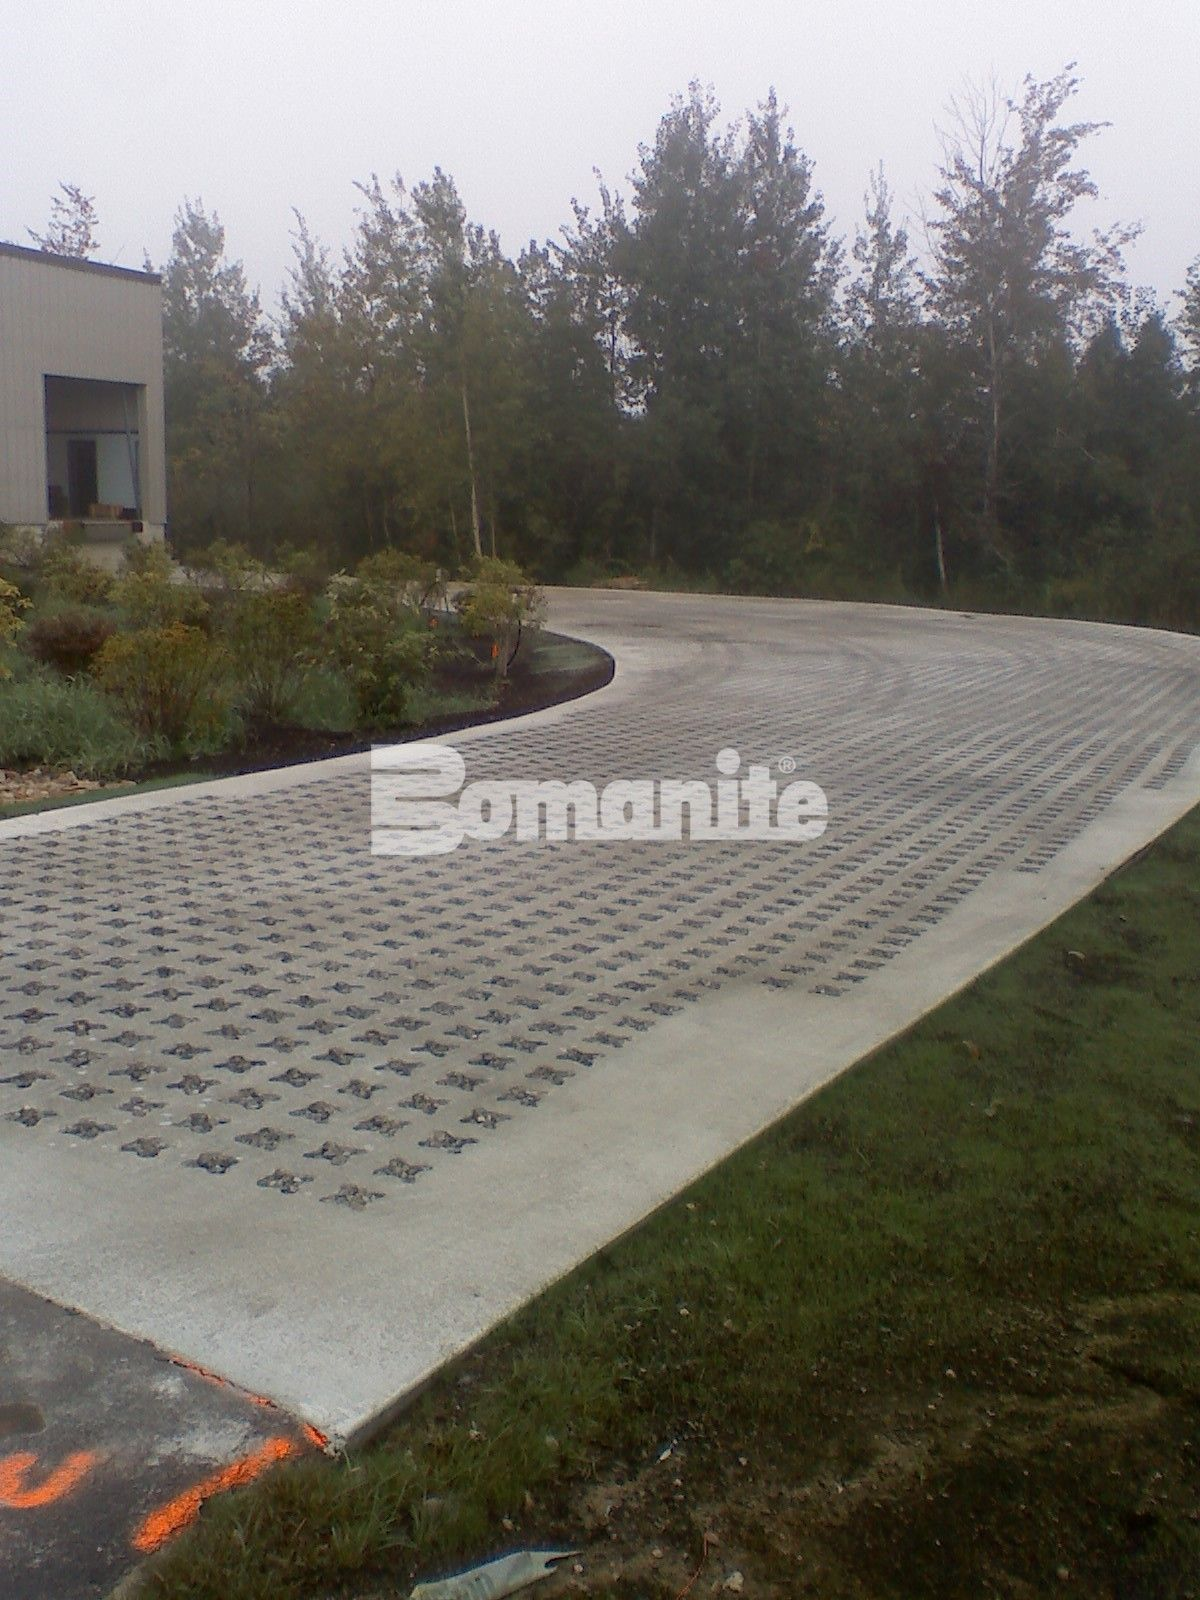 Grasscrete Stone Filled System is robust enough for a 40,000 lb loaded truck access road that was created to withstand the heavy load deliveries at Micronics headquartered in Portsmouth New Hampshire installed by Premier Concrete Construction.